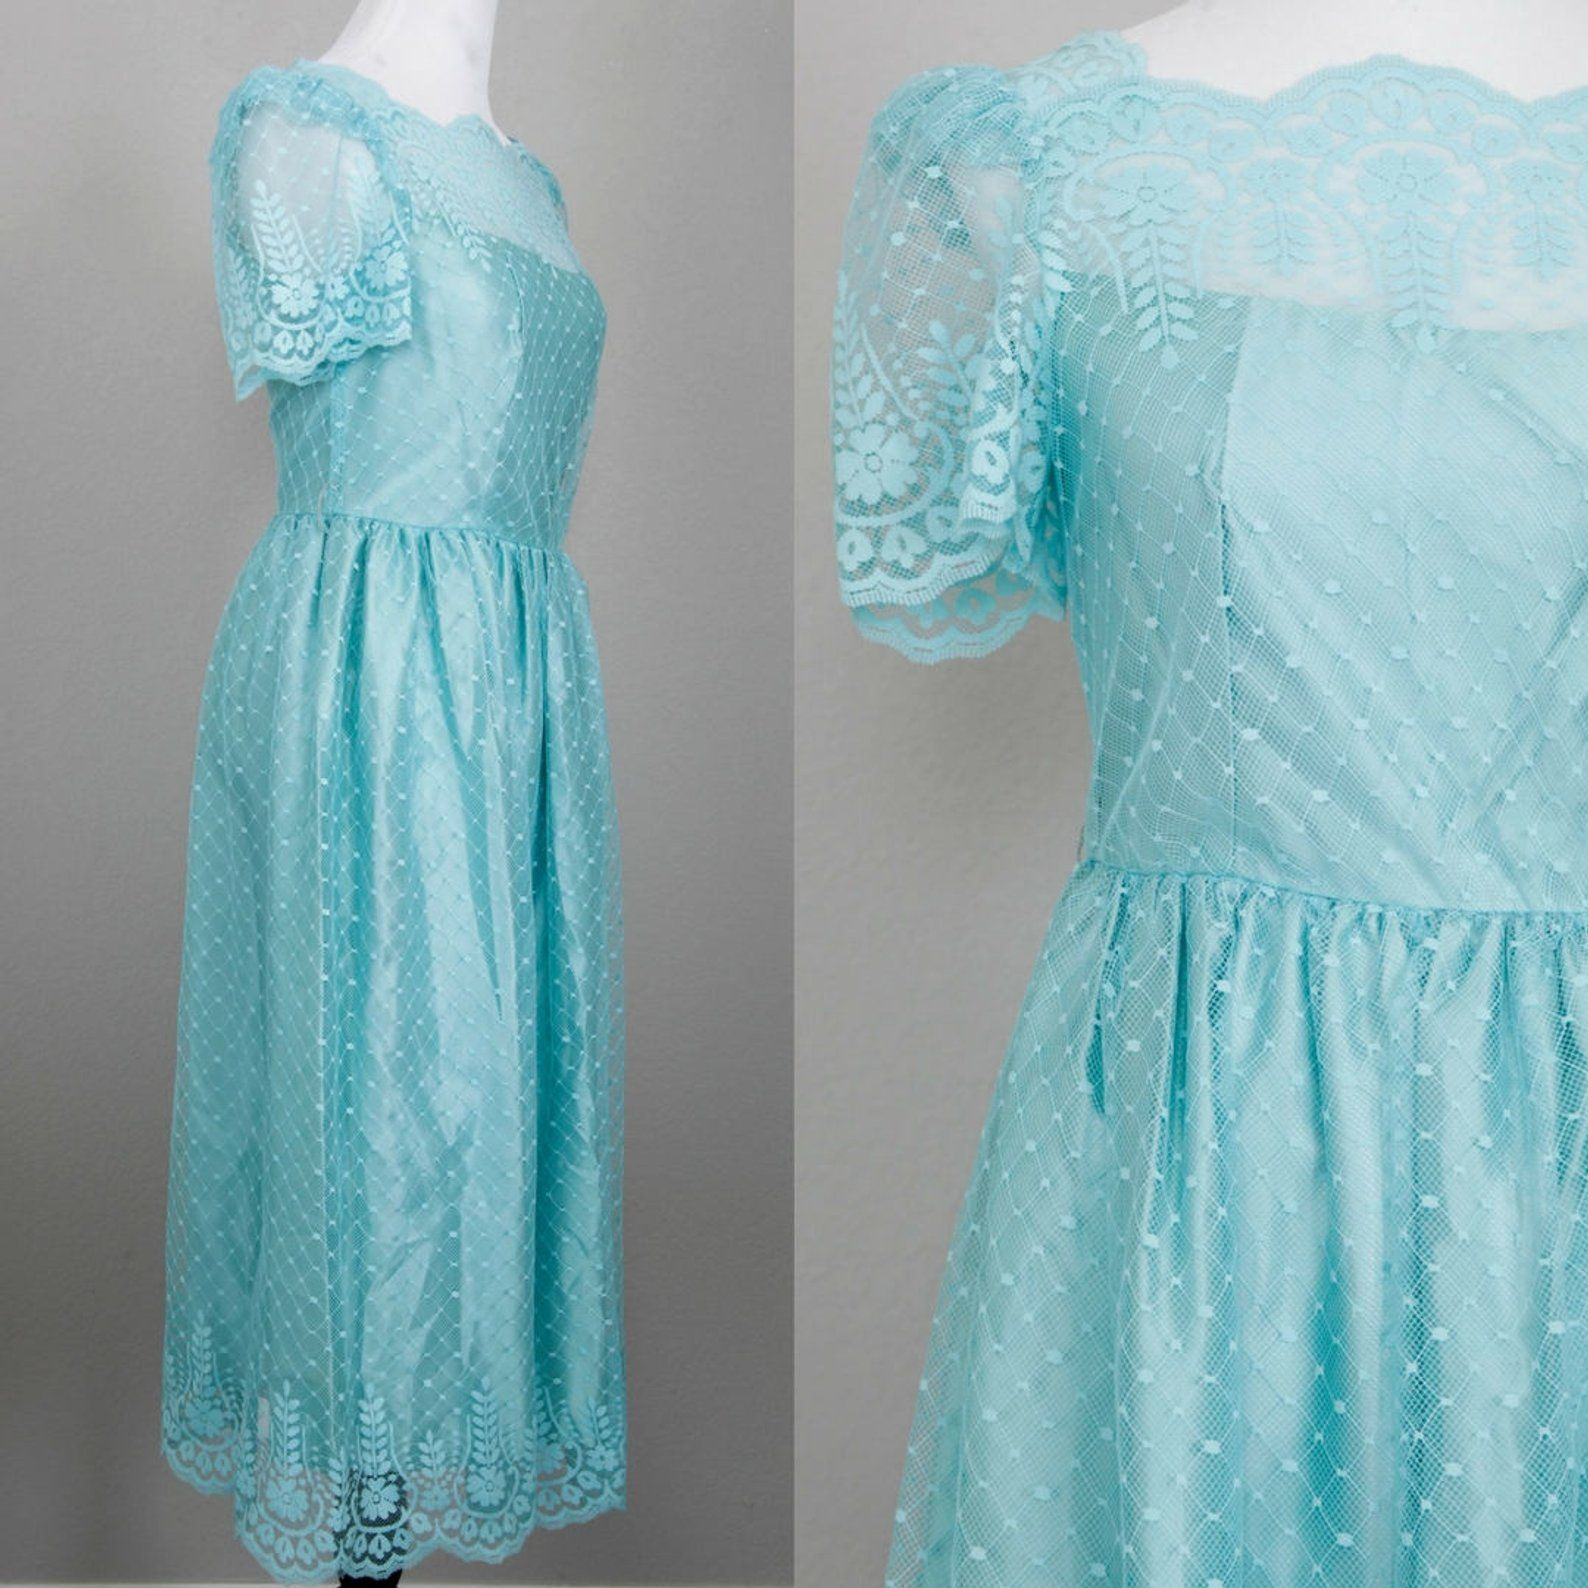 Jcpenney bridesmaid gown size 910 bluegreen